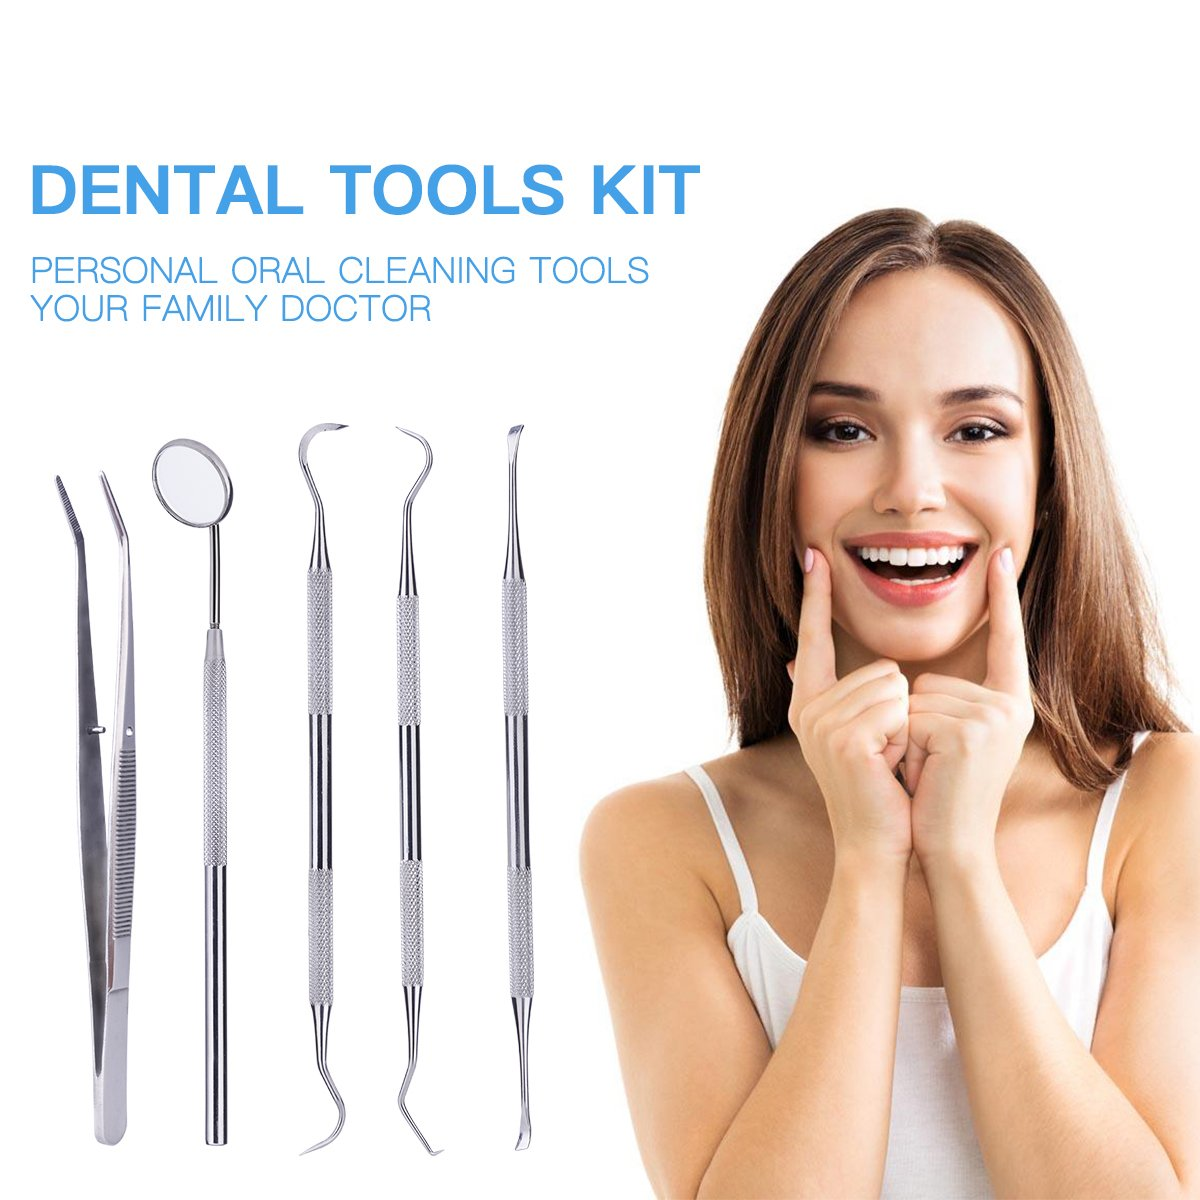 Dental Hygiene Kit,CkeyiN Professional 5-in-1 Stainless Steel Dental Tools Kit - Includes Dental Explorer, Mouth Mirror, Tartar Scraper, Dental Scaler and a Tweezers to Remove Plaque, Dental Cleaning, for Professional and Home Use